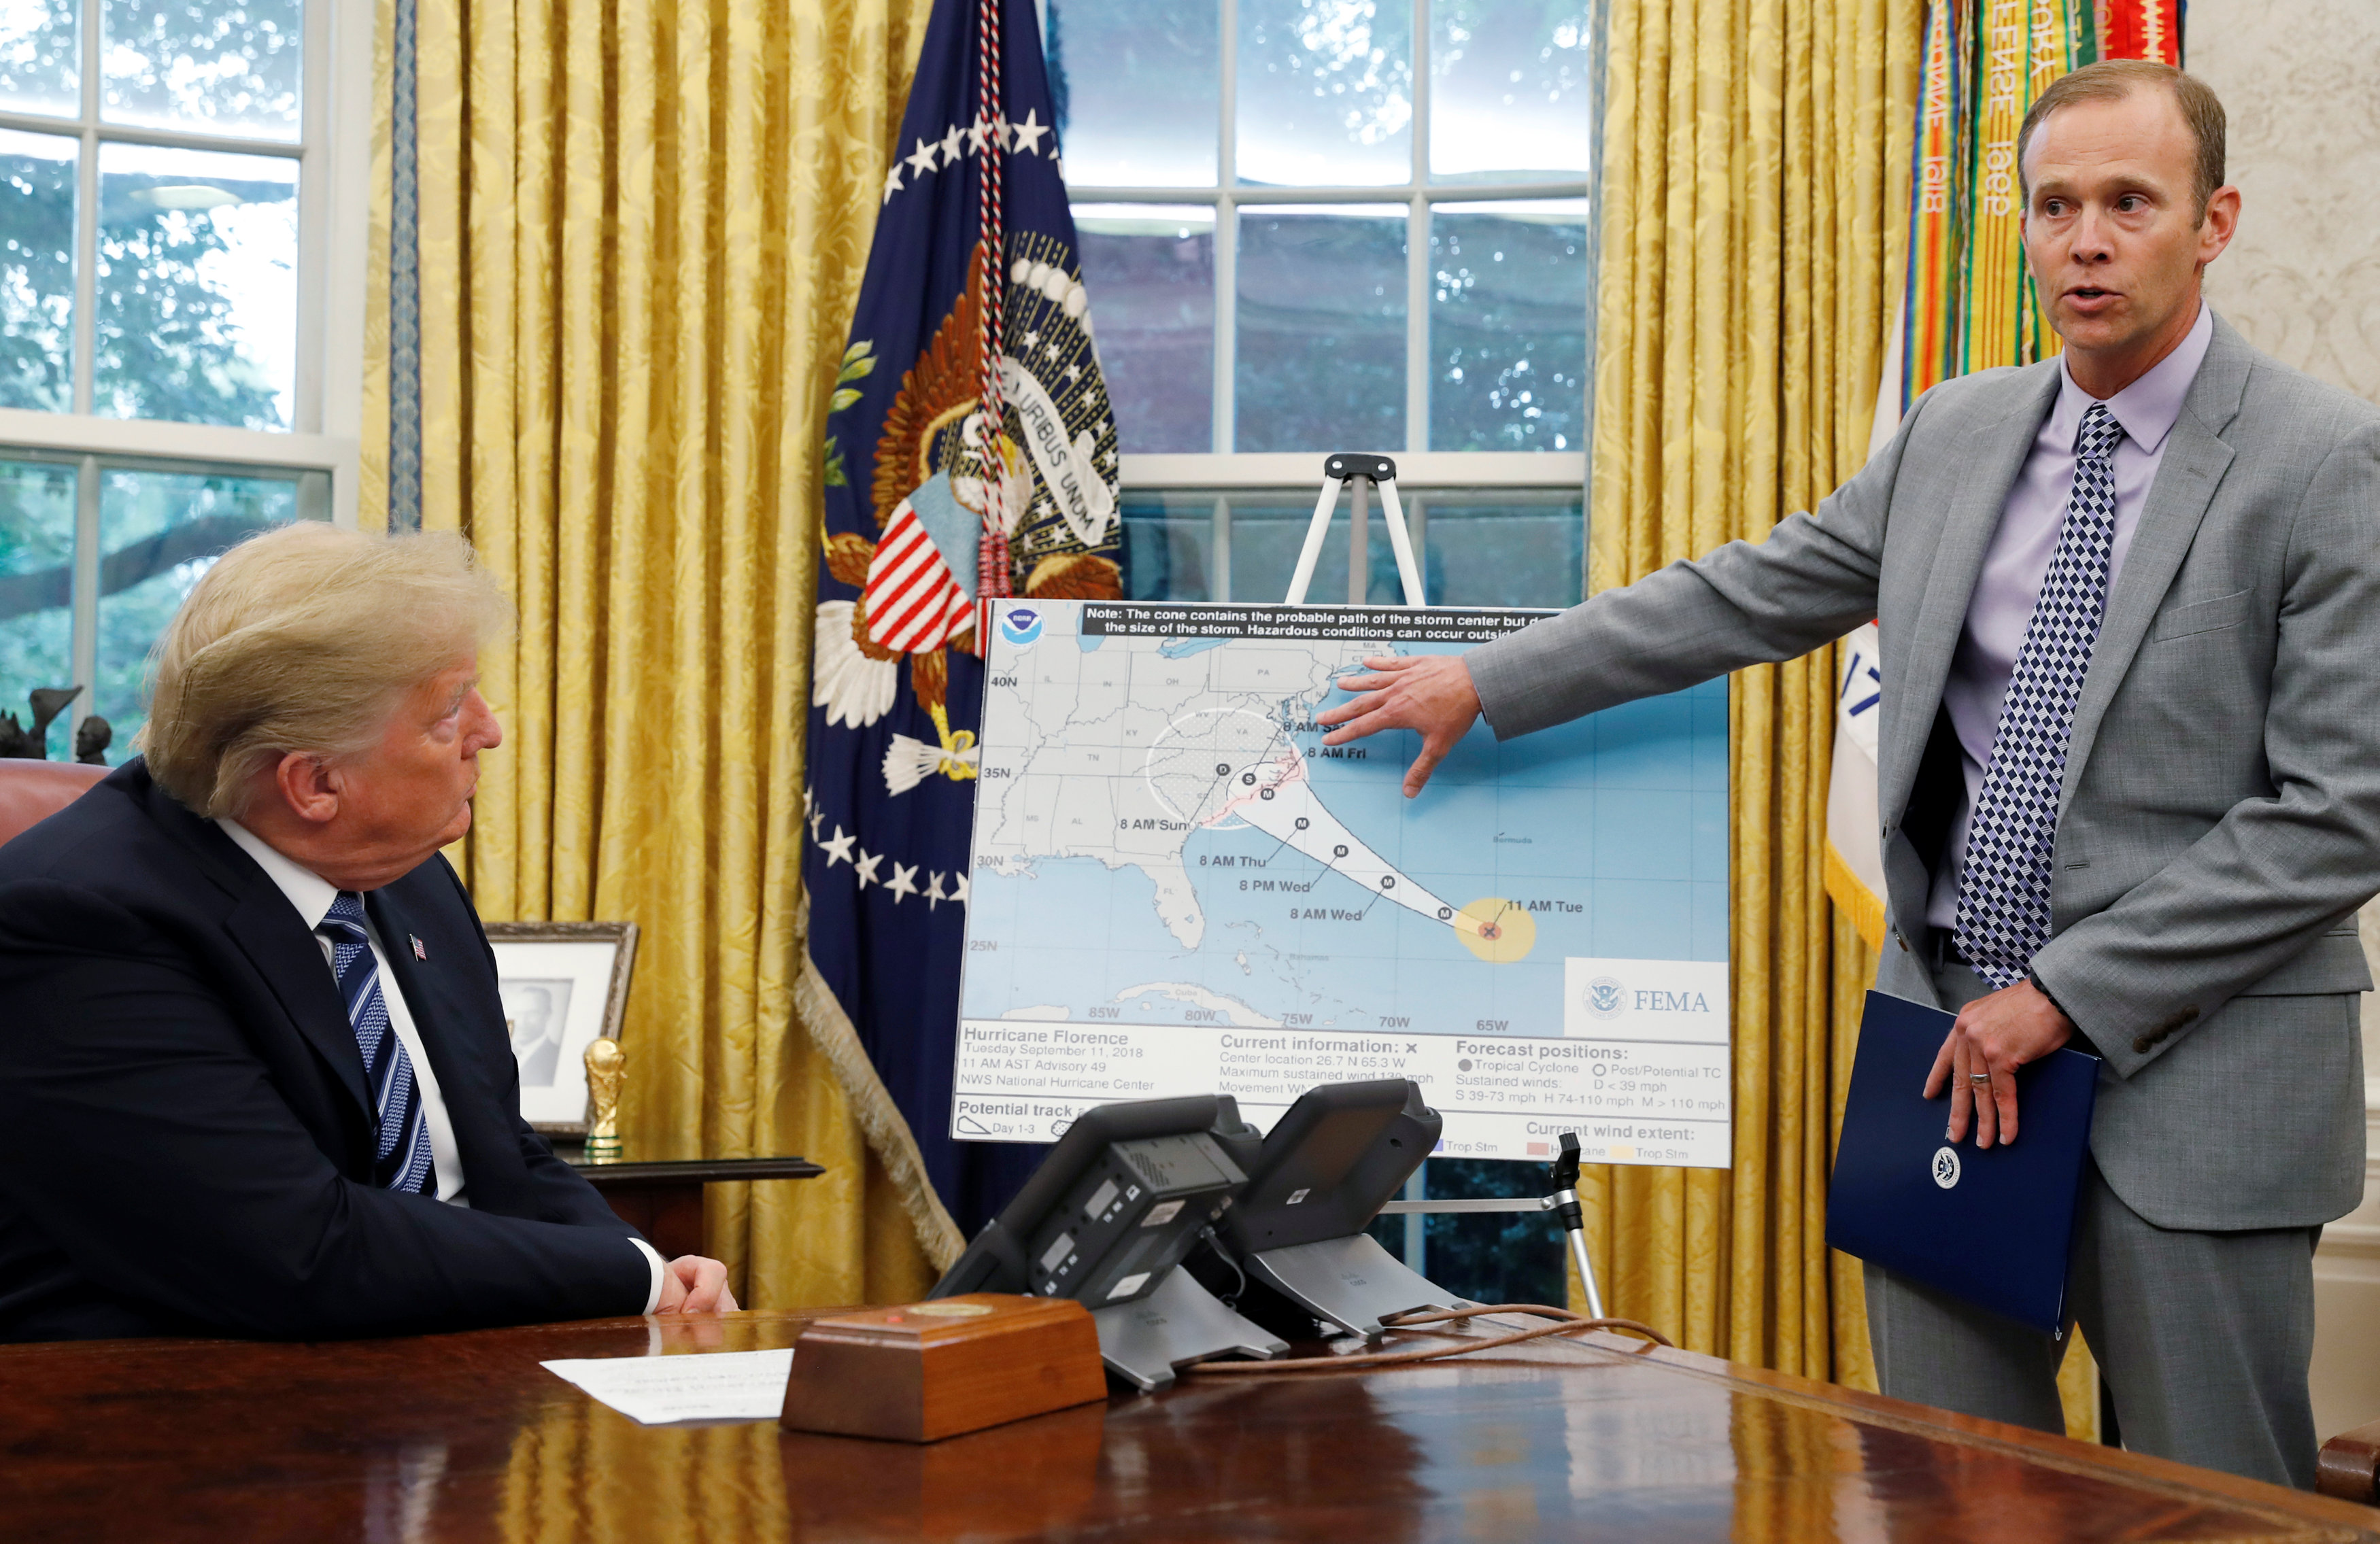 U.S. President Donald Trump holds an Oval Office meeting on hurricane preparations as FEMA Administrator Brock Long points to the potential track of Hurricane Florence on a graphic at the White House in Washington, U.S., September 11, 2018. REUTERS/Leah Millis